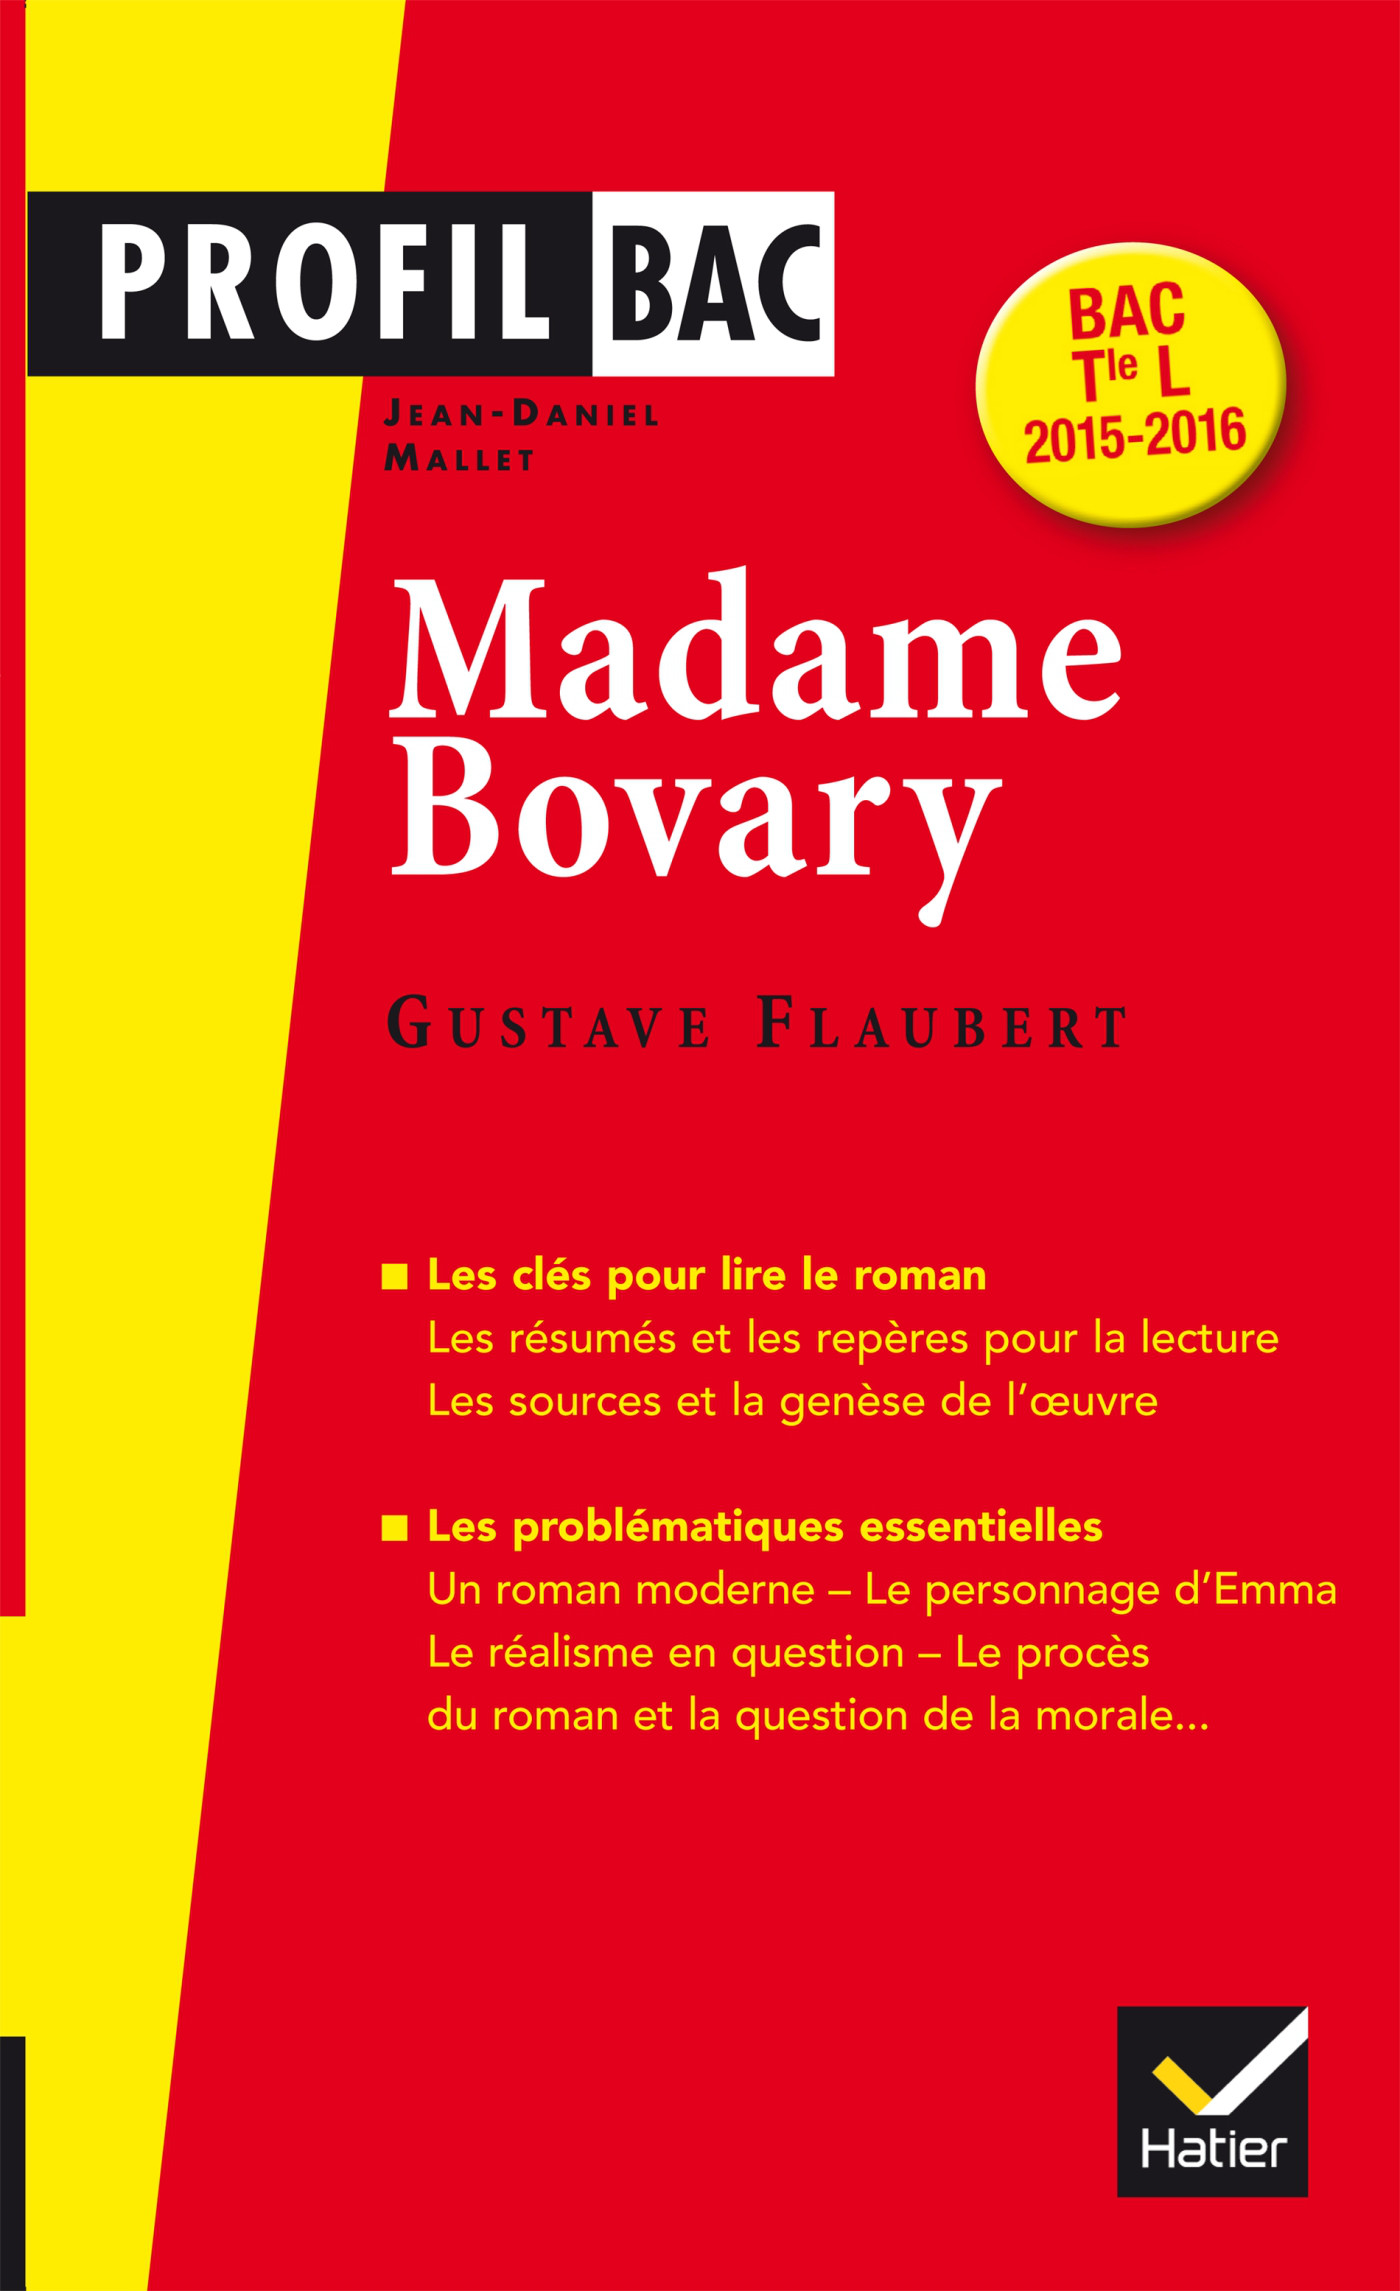 madame bovary analysis essay Madame bovary (roy's analysis) a custom essay sample on madame bovary madame bovary is clueless to why she has progressed to such an ill state.